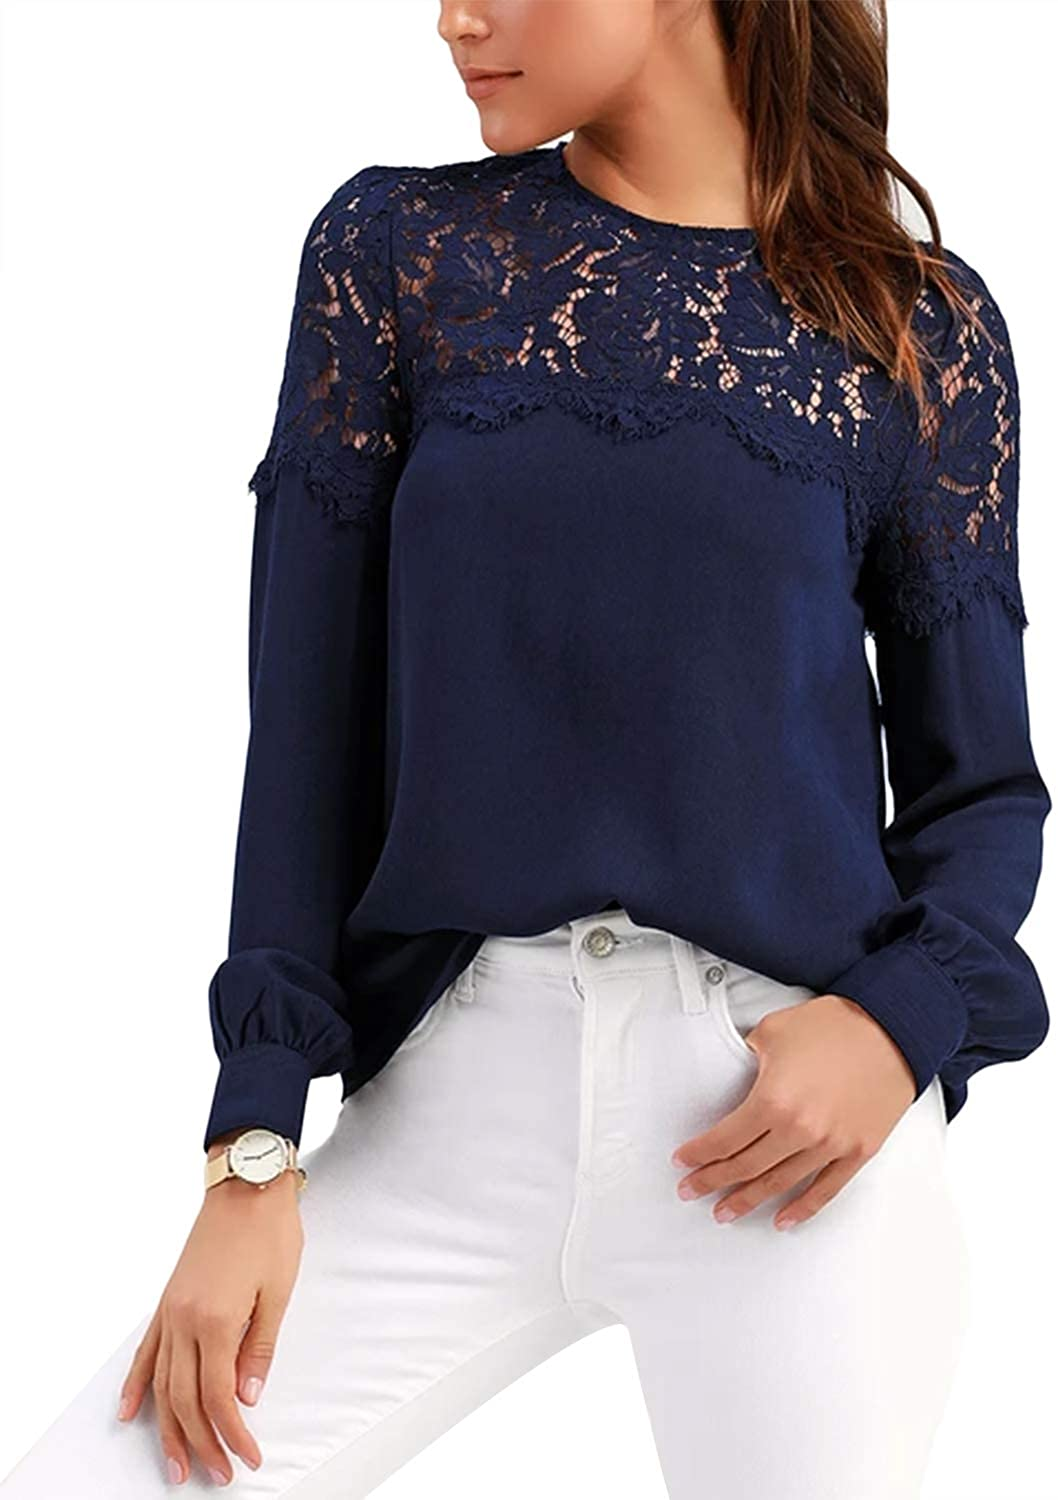 SUNNYME Womens Lace Chiffon Tops Long Sleeve Shirt Blouses Casual Work Blouses and Tops for Women